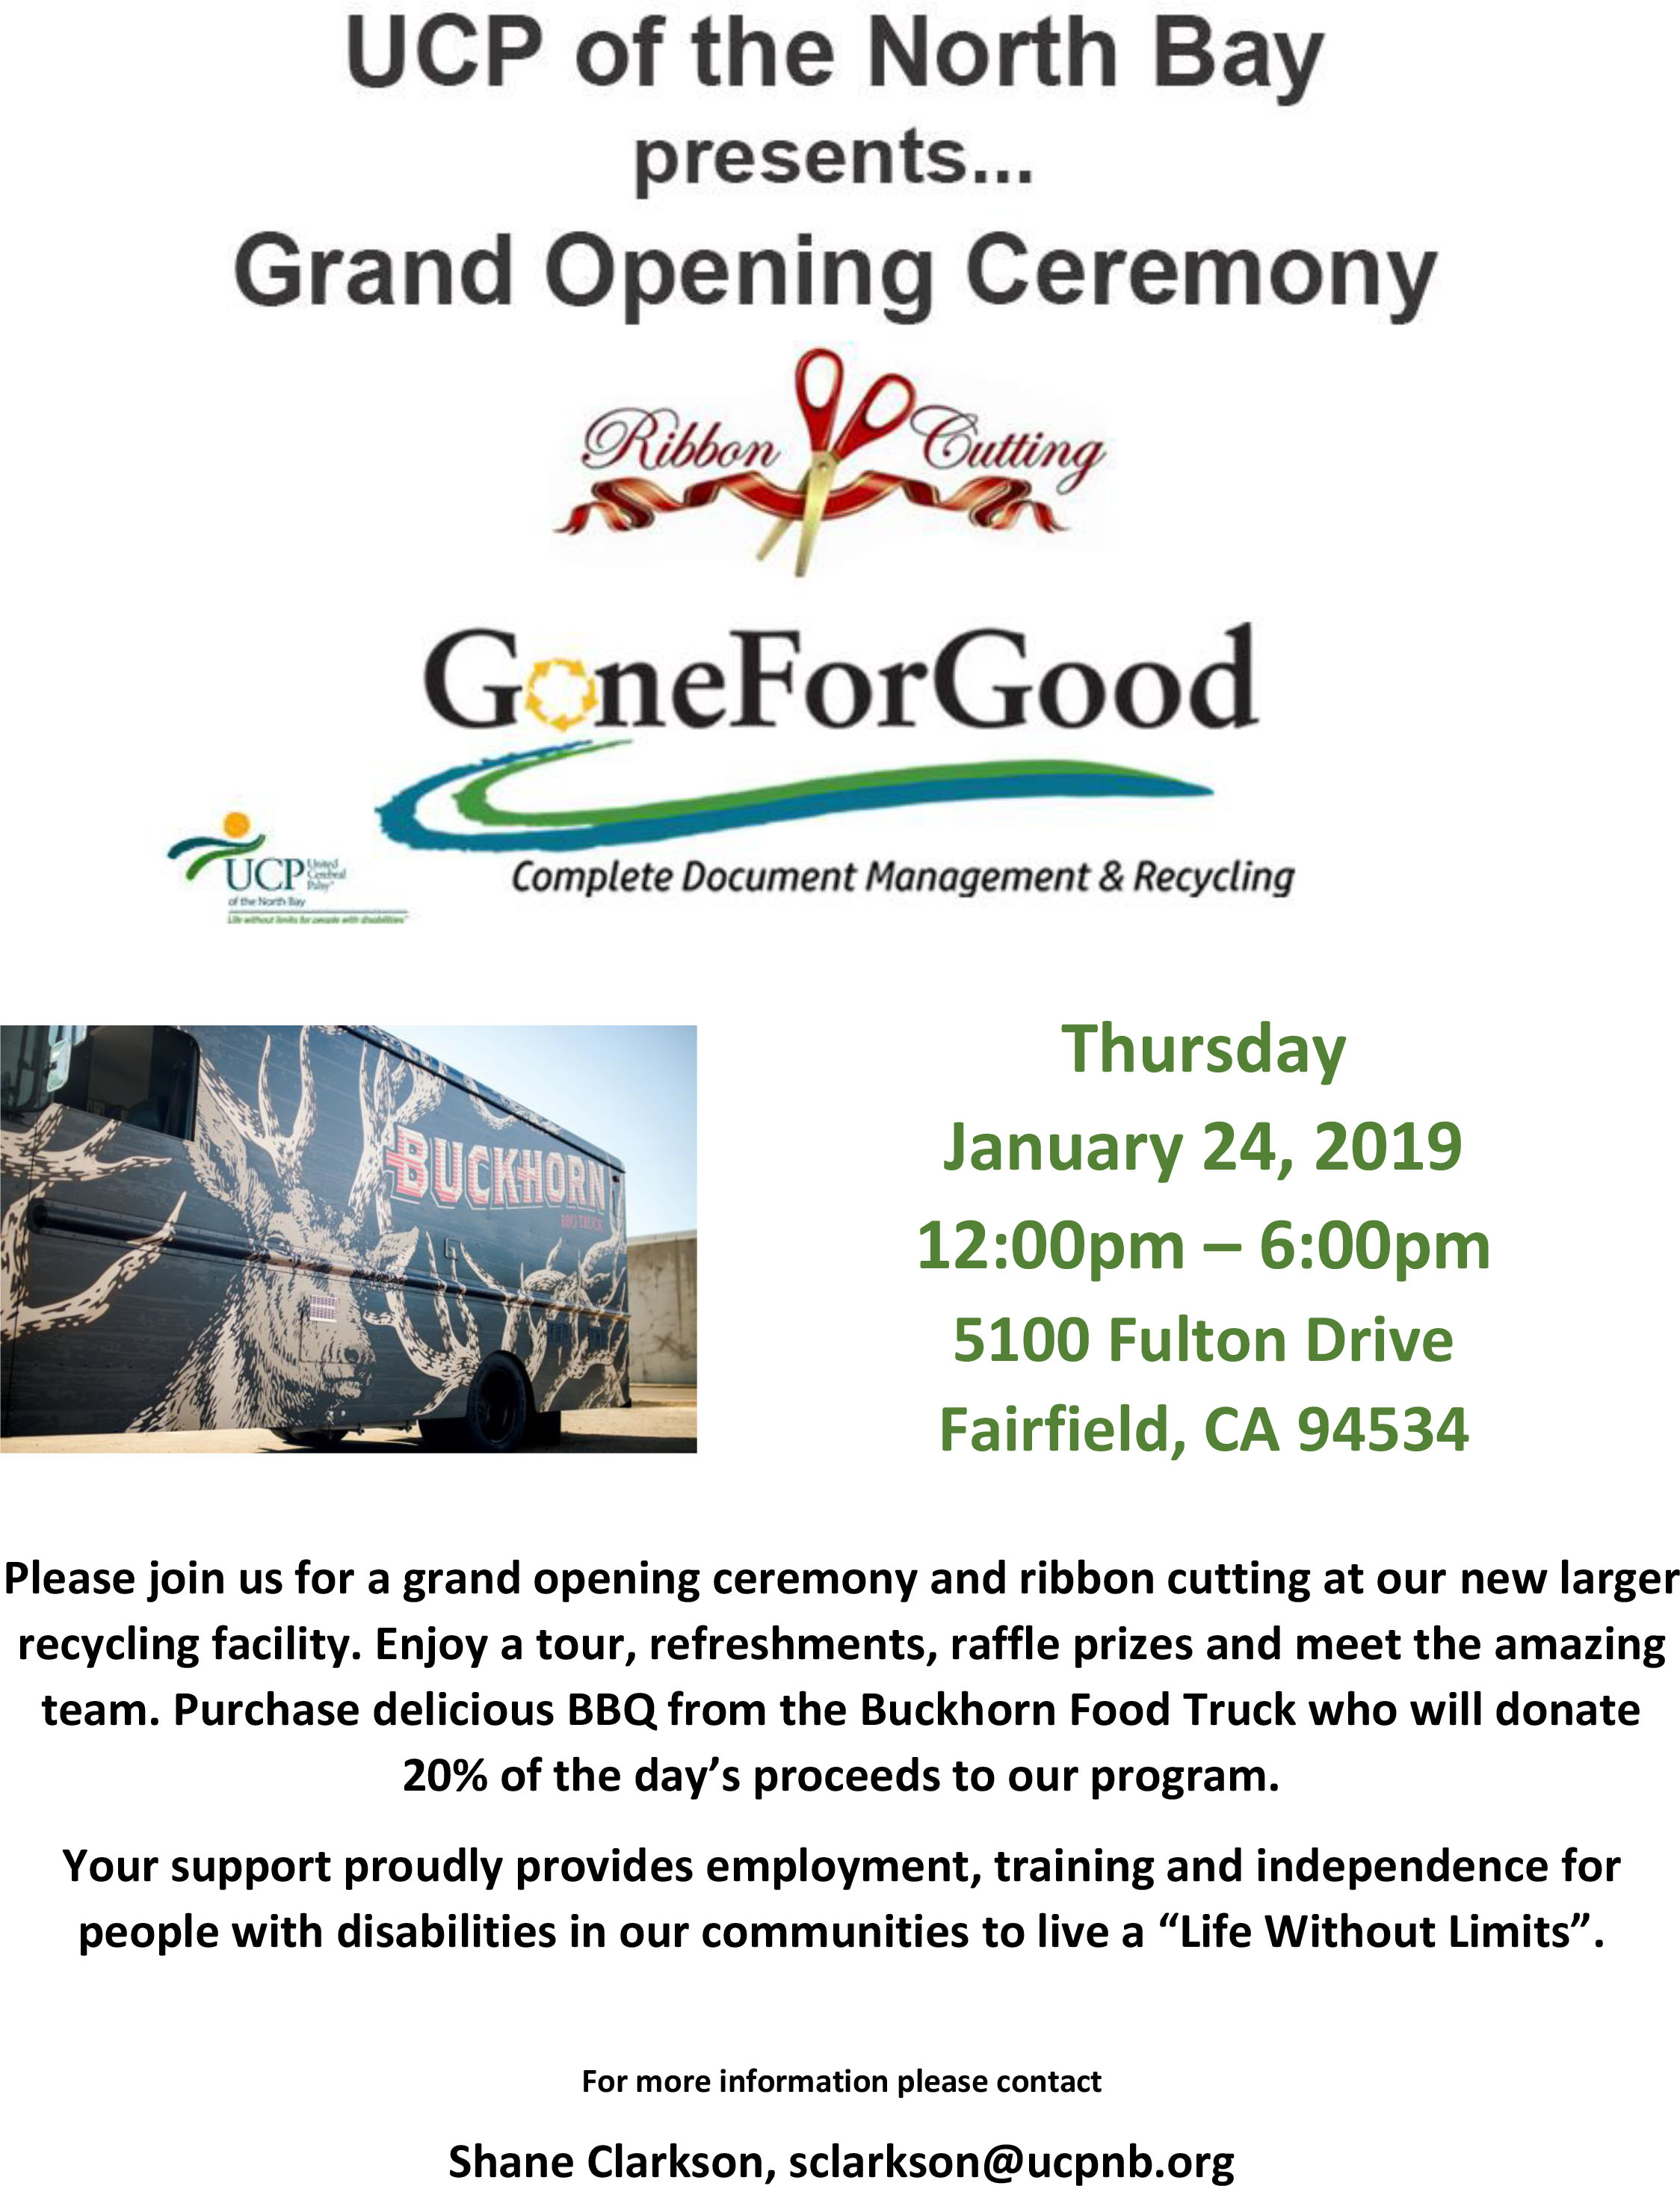 gone-for-good-ribbon-cutting-ceremony-january-2019